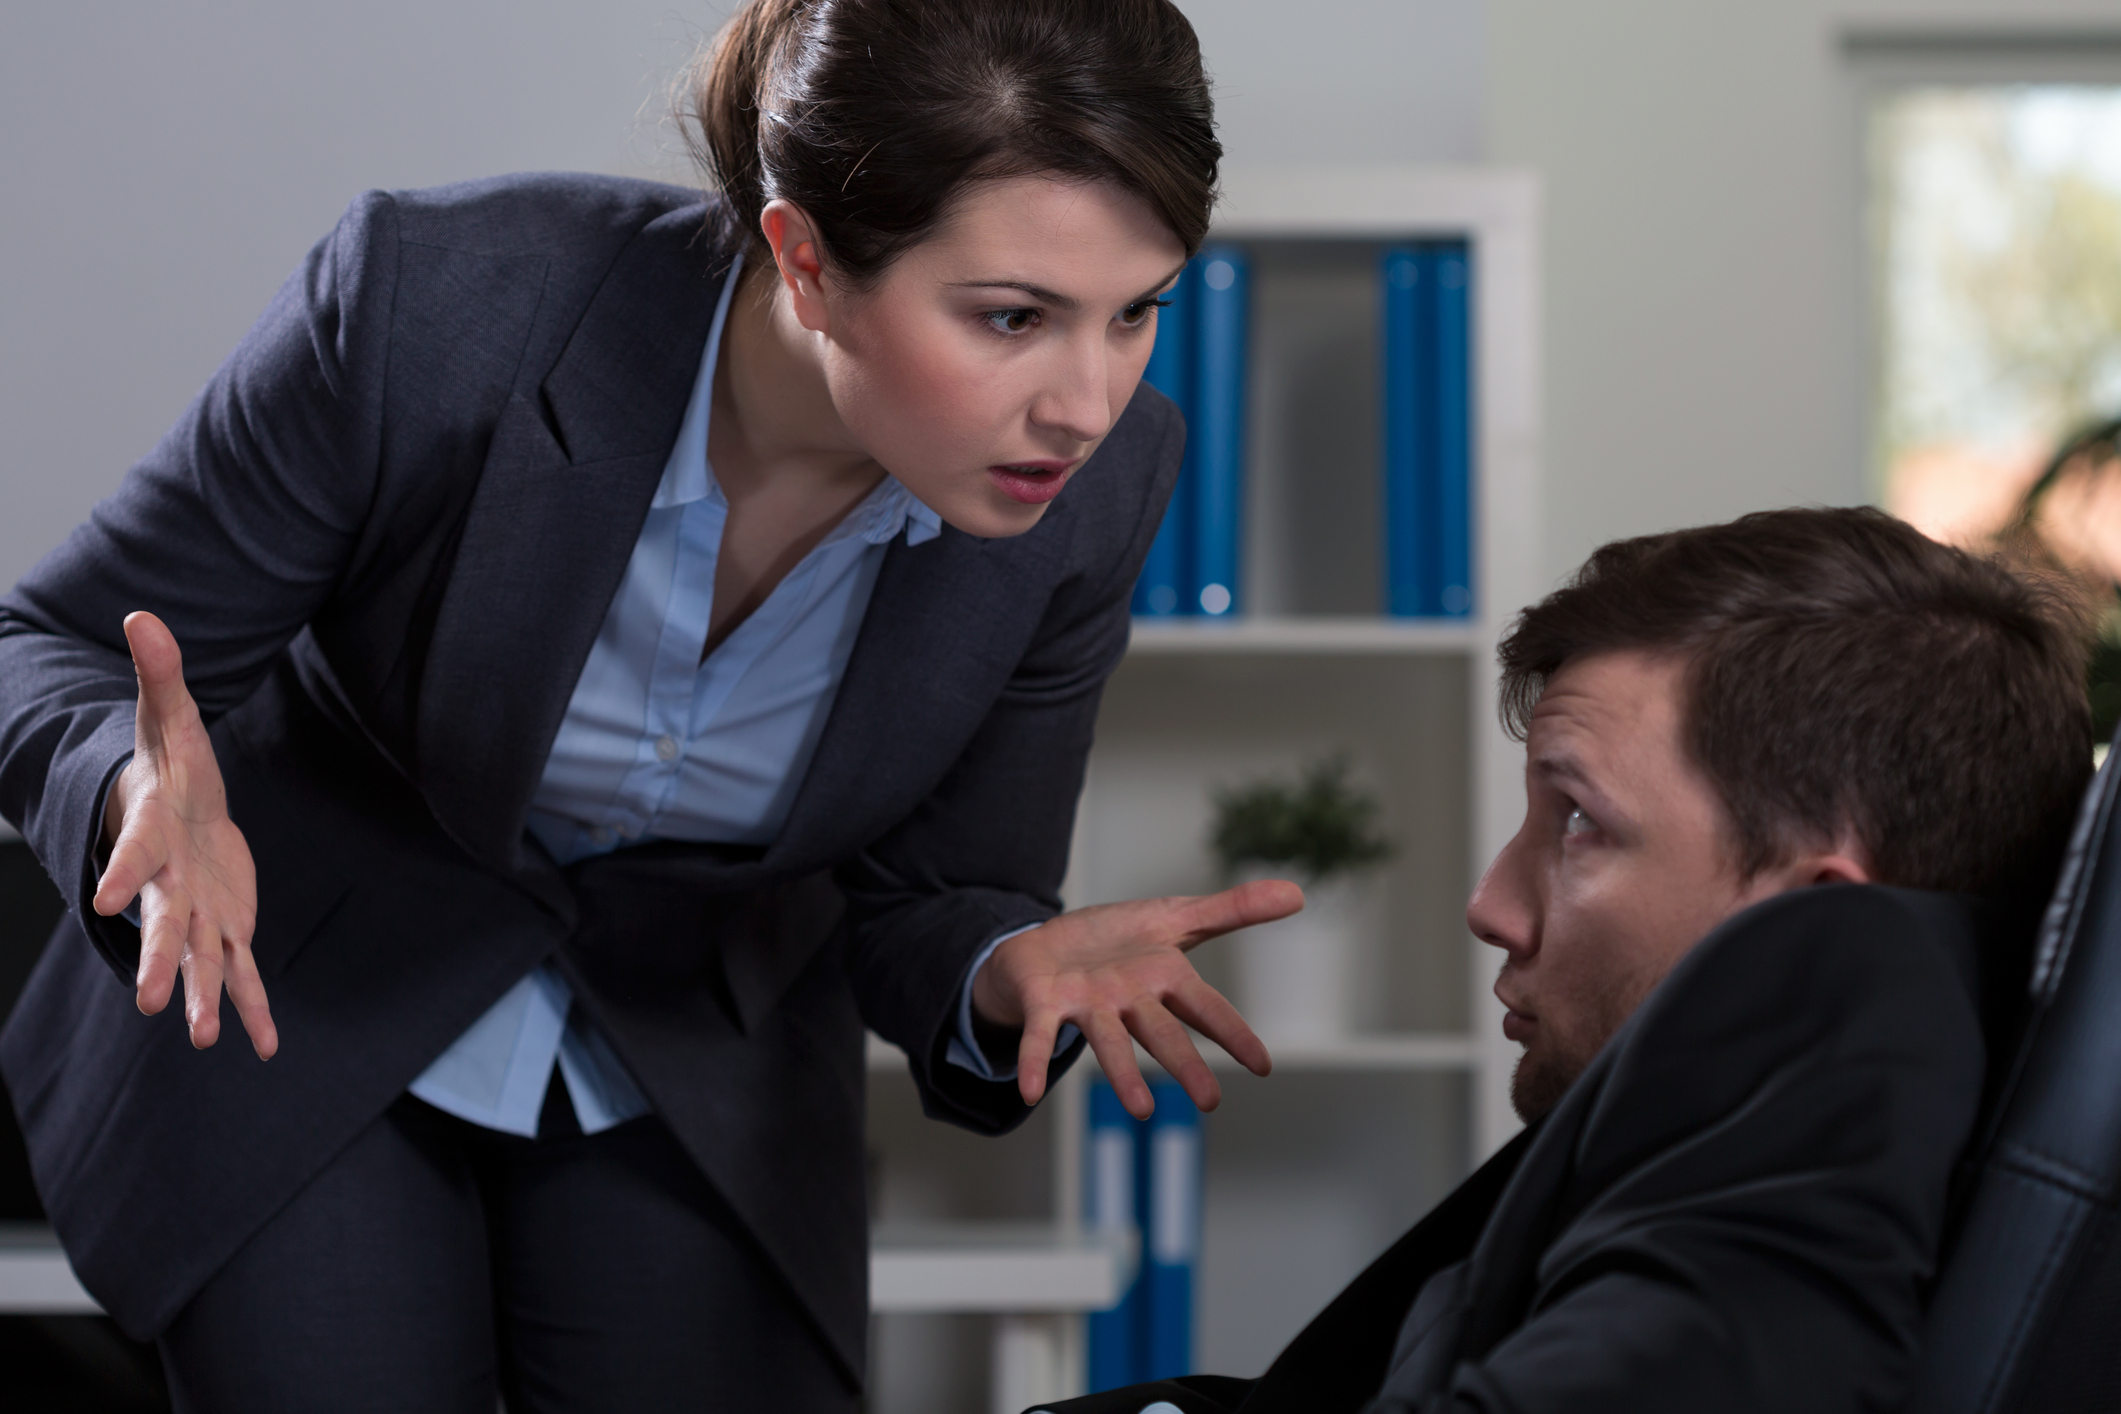 Bullying, Discrimination and Sexual Harassment - Dealing with Bad ...